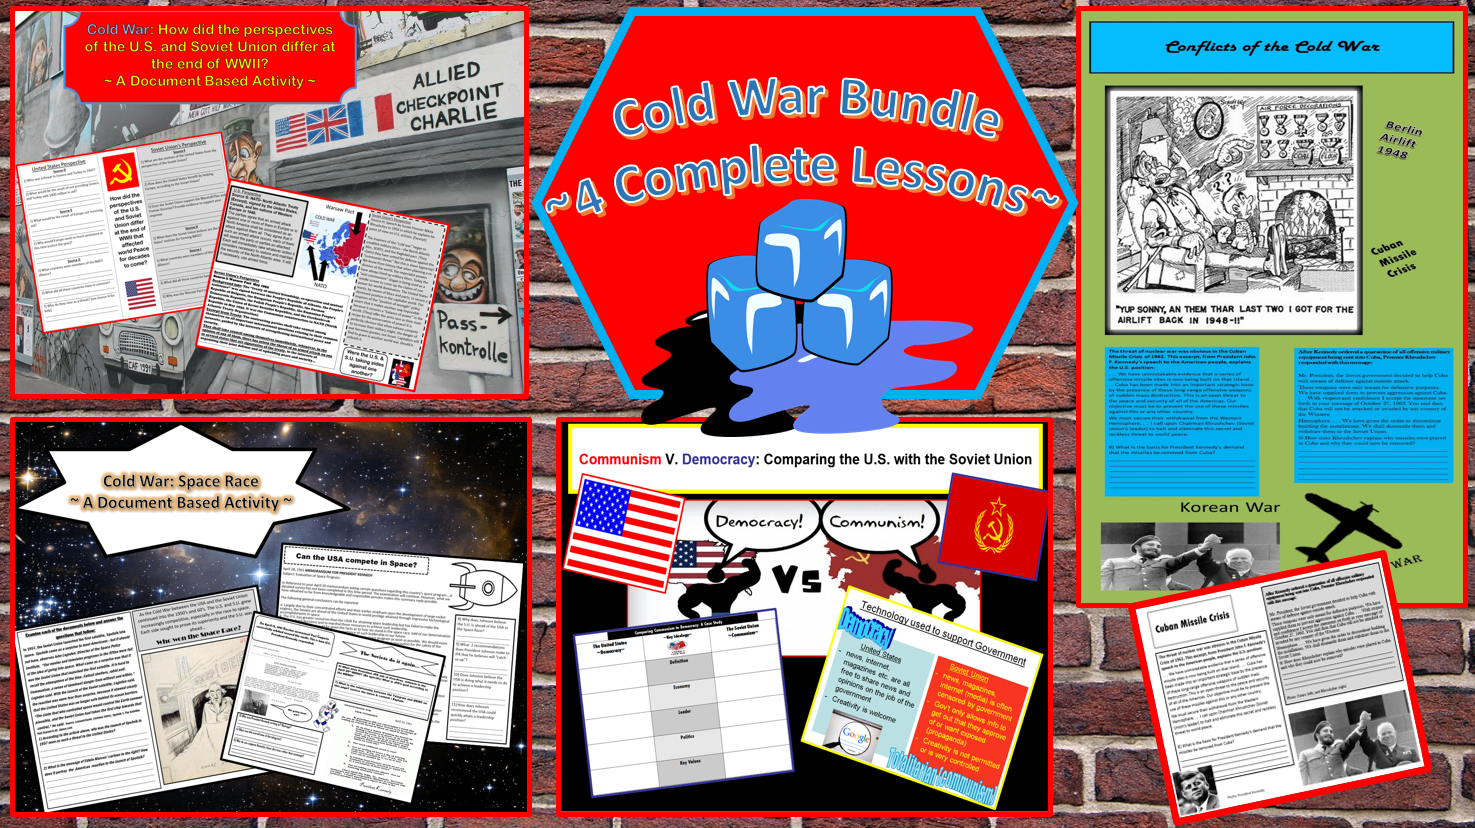 cold war bundle ~4 complete lessons on the cold war student 4 cold war lessons resources